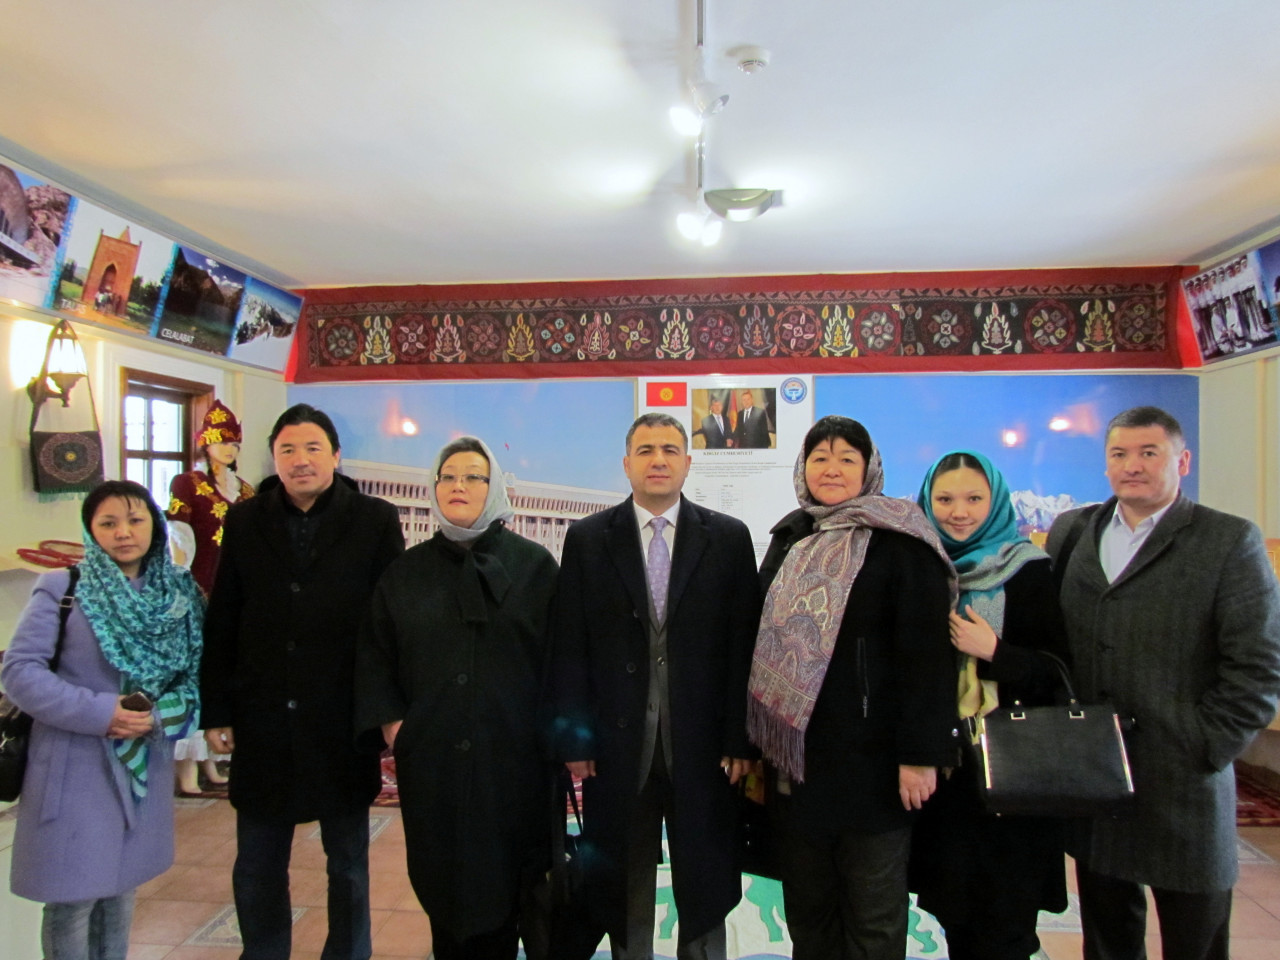 Visit from the Deputy Minister Chakiev to Culture Co. Galeri - 10. Resim